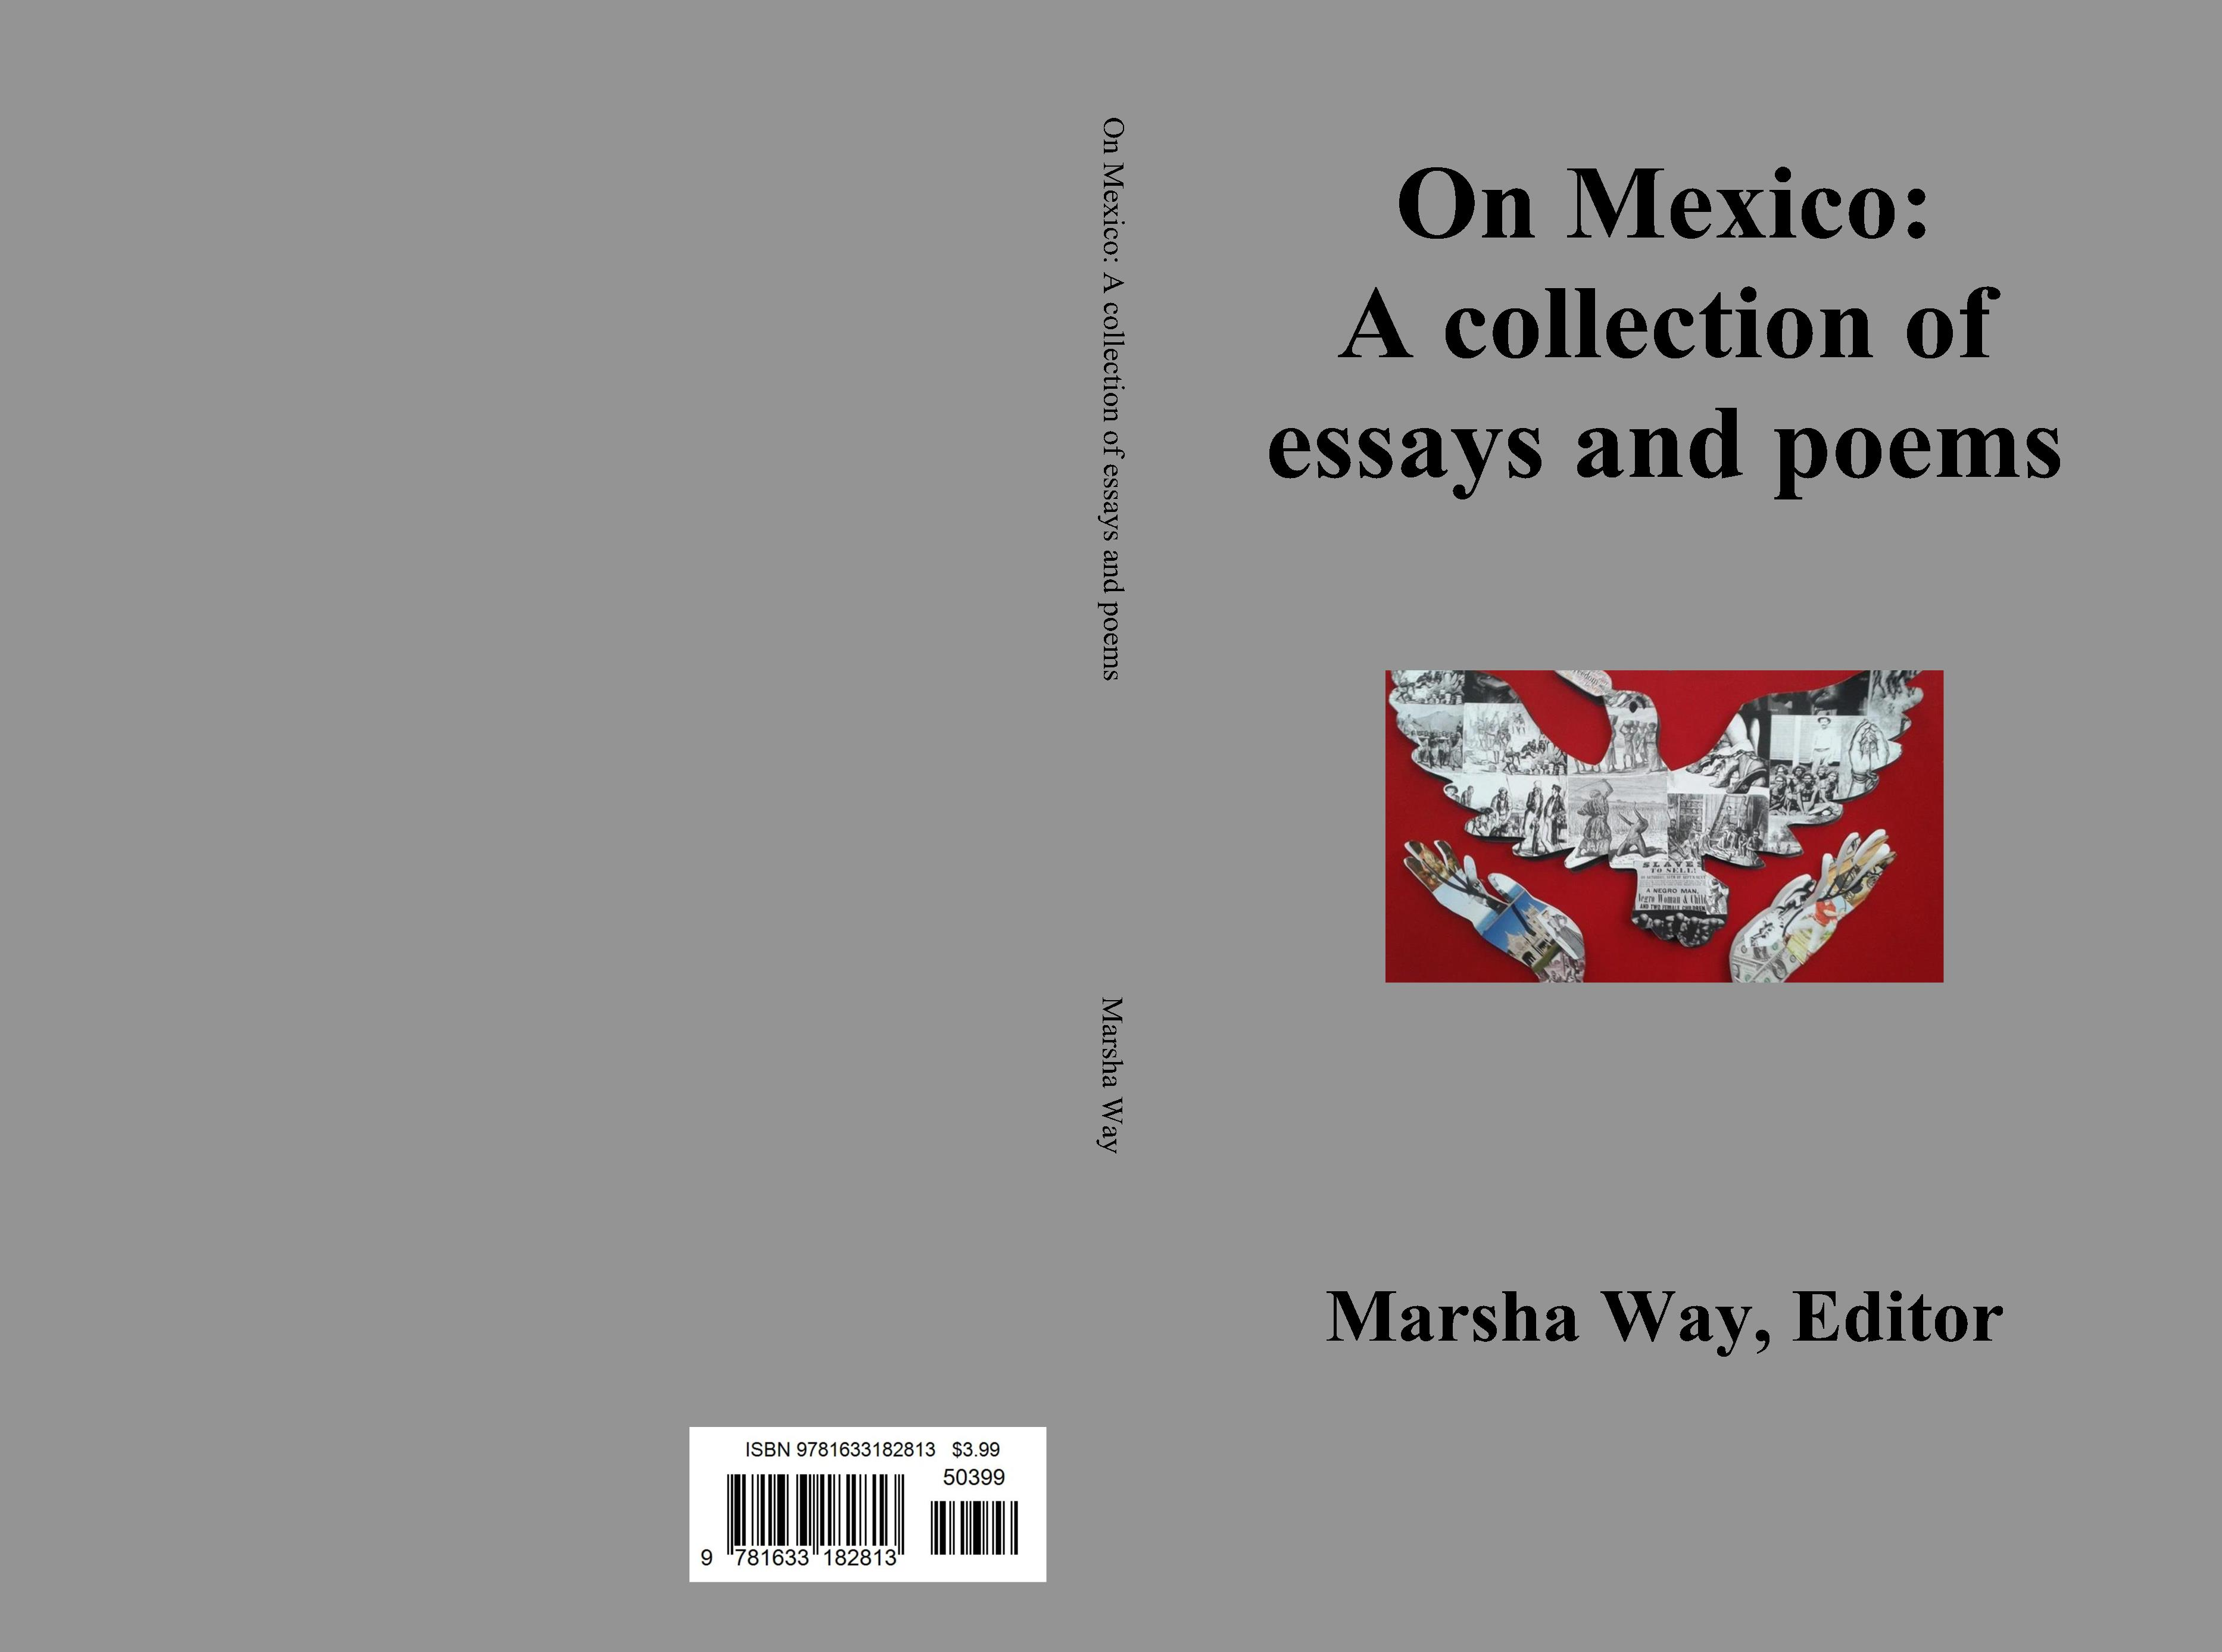 On Mexico: A collection of essays and poems cover image